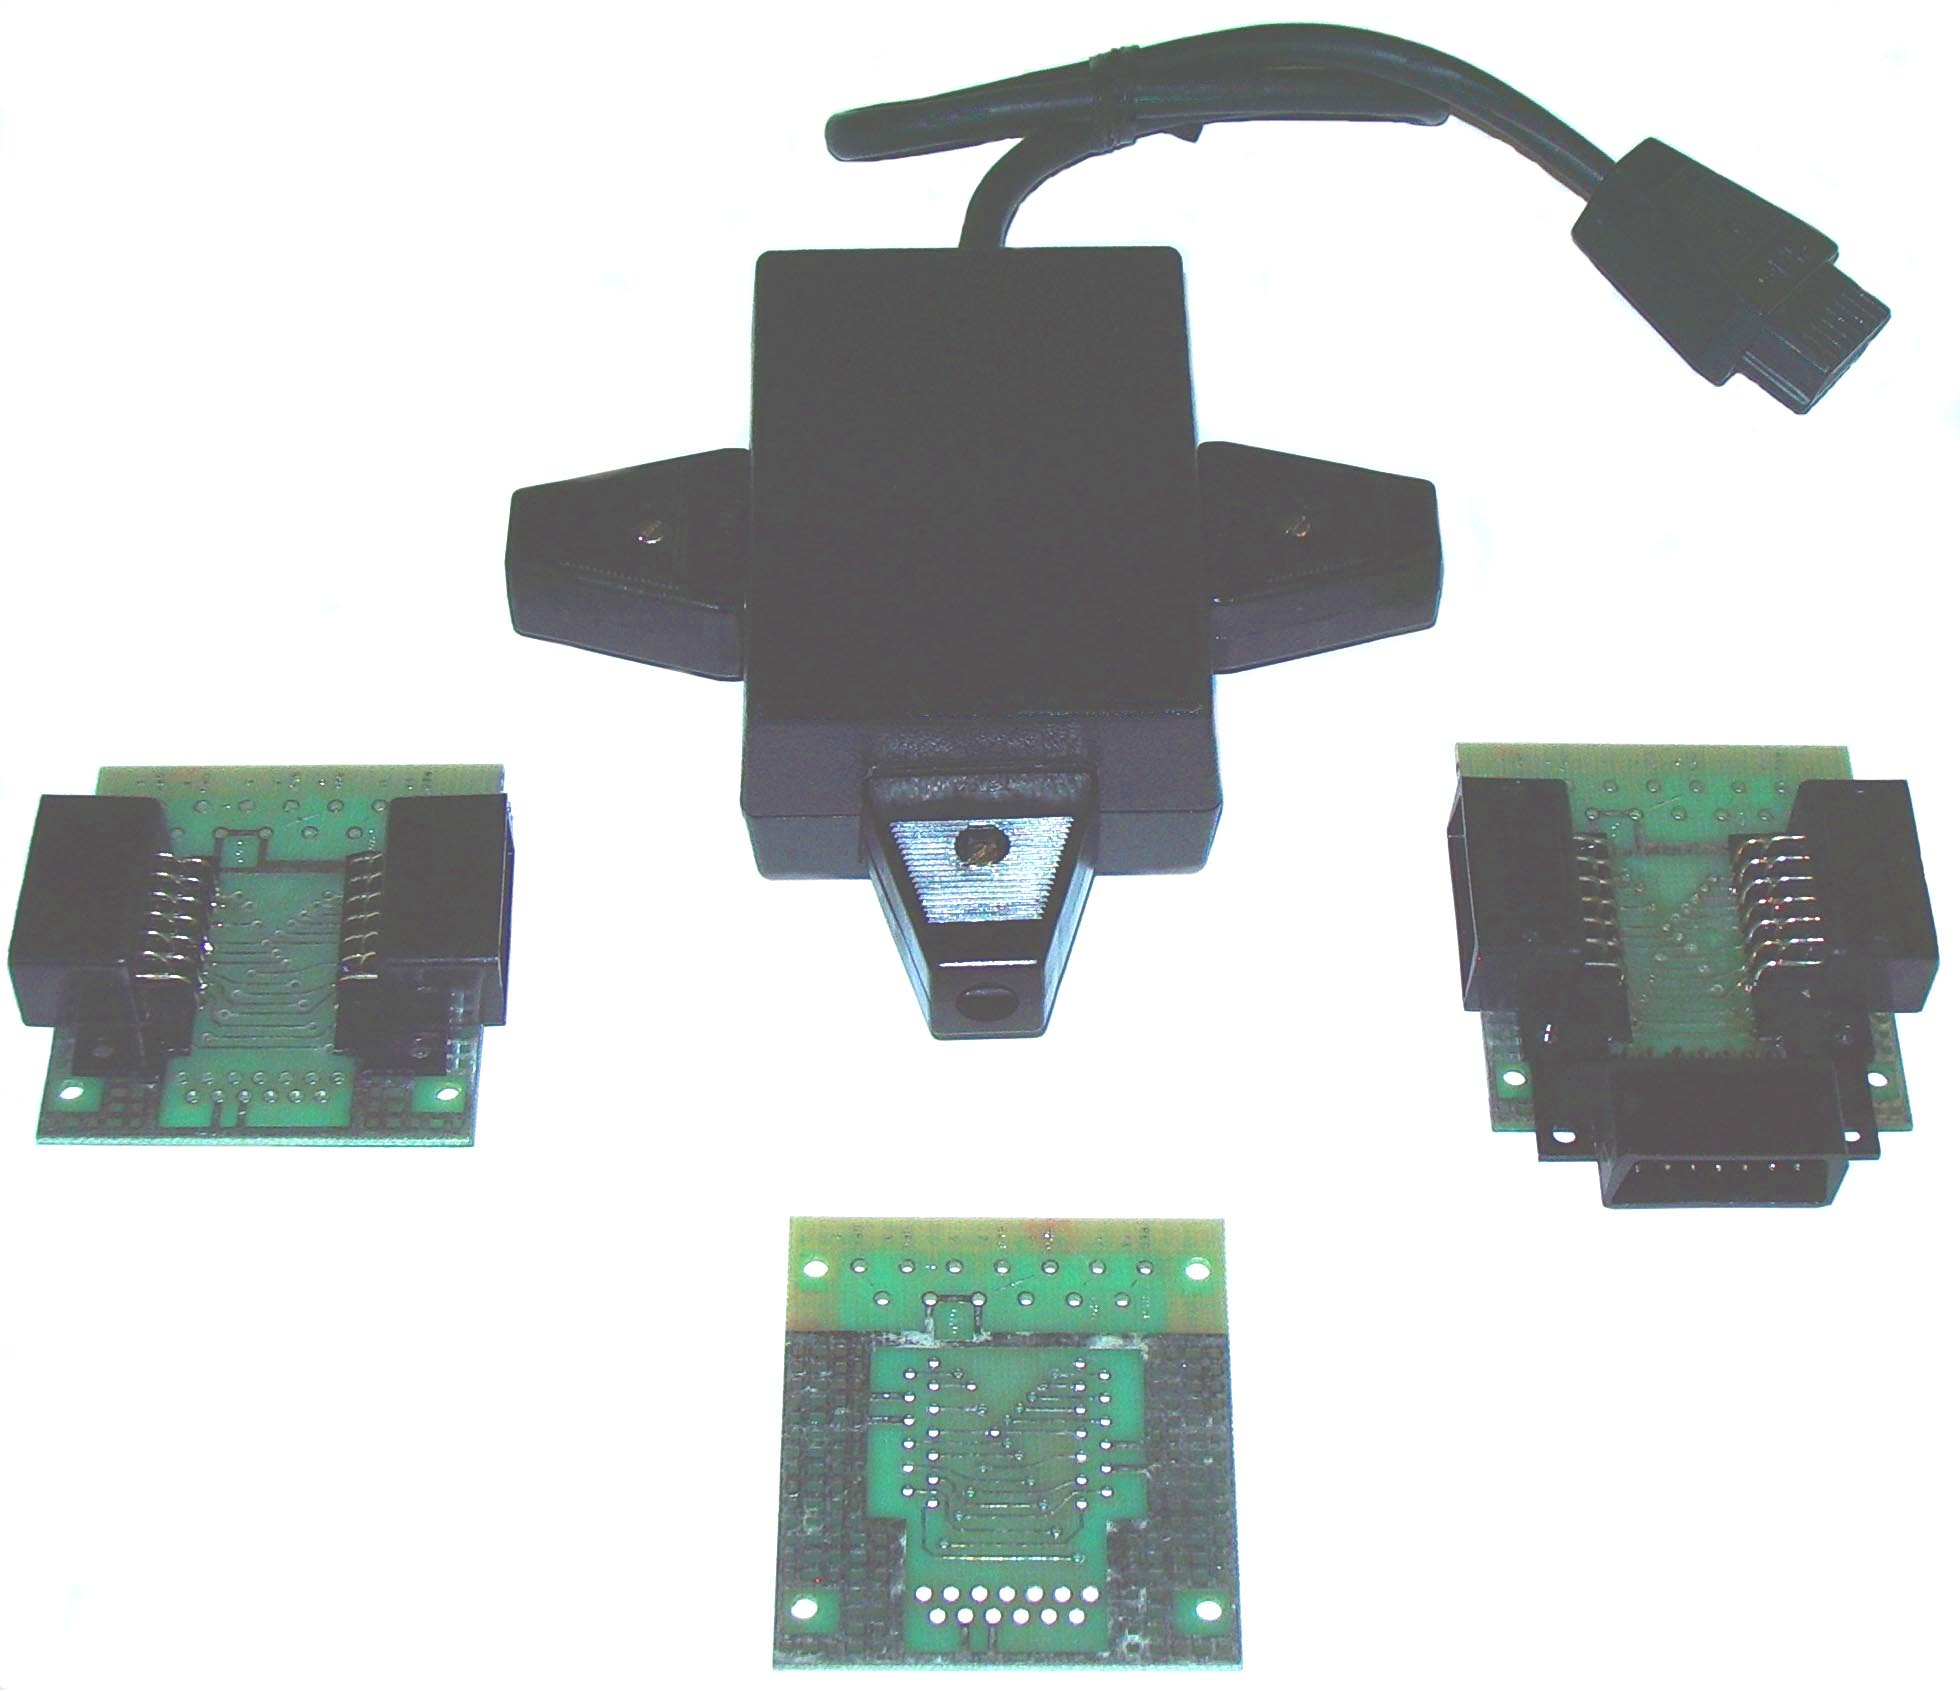 8 Bit Drives Electronic Circuit Board Repair Gt World Supply The Bare Apelink Pcb Light Green Top Side Sio Female Connector And Dark Solder Can Be Configured Assembled Several